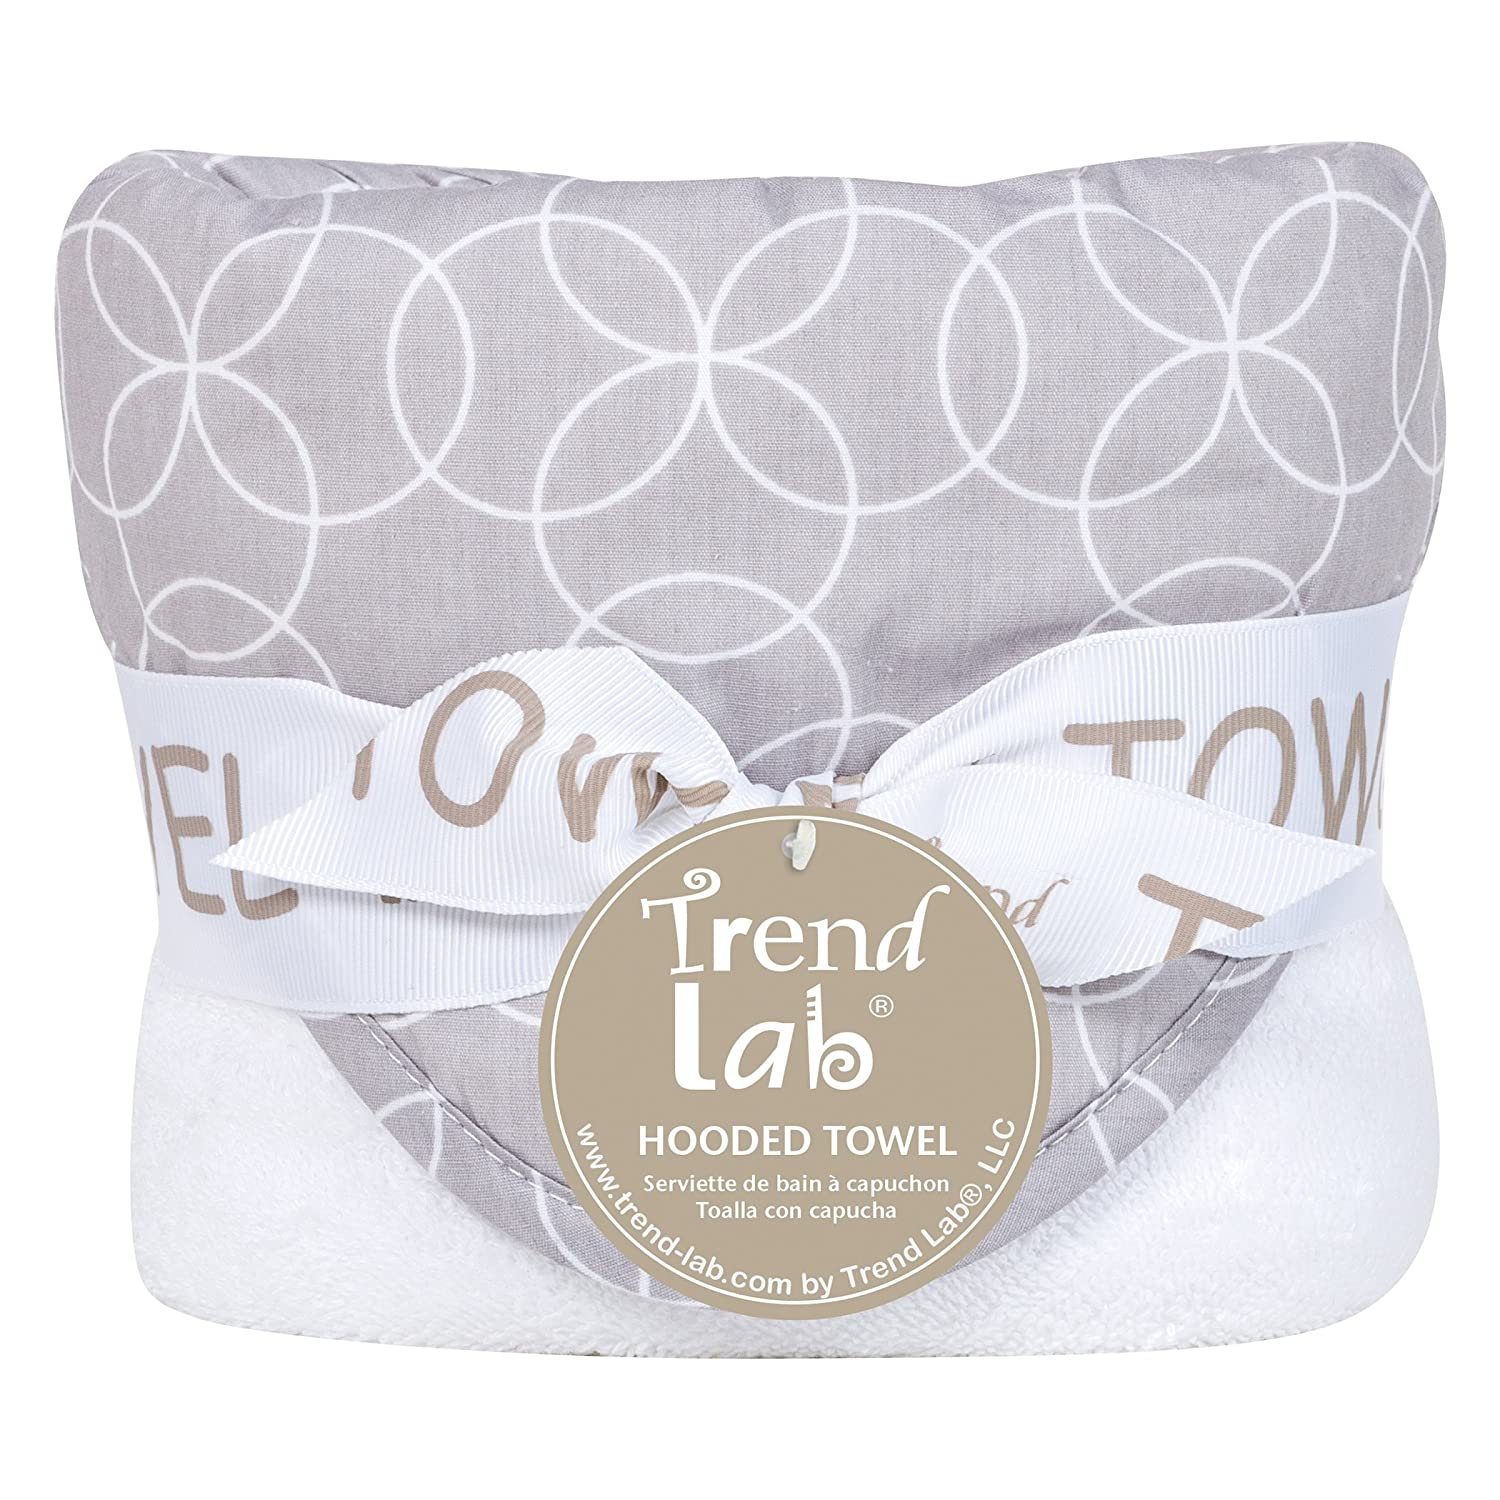 Amazon.com : Trend Lab Circles Hooded Towel, Gray/White, 3230-Inch : Baby